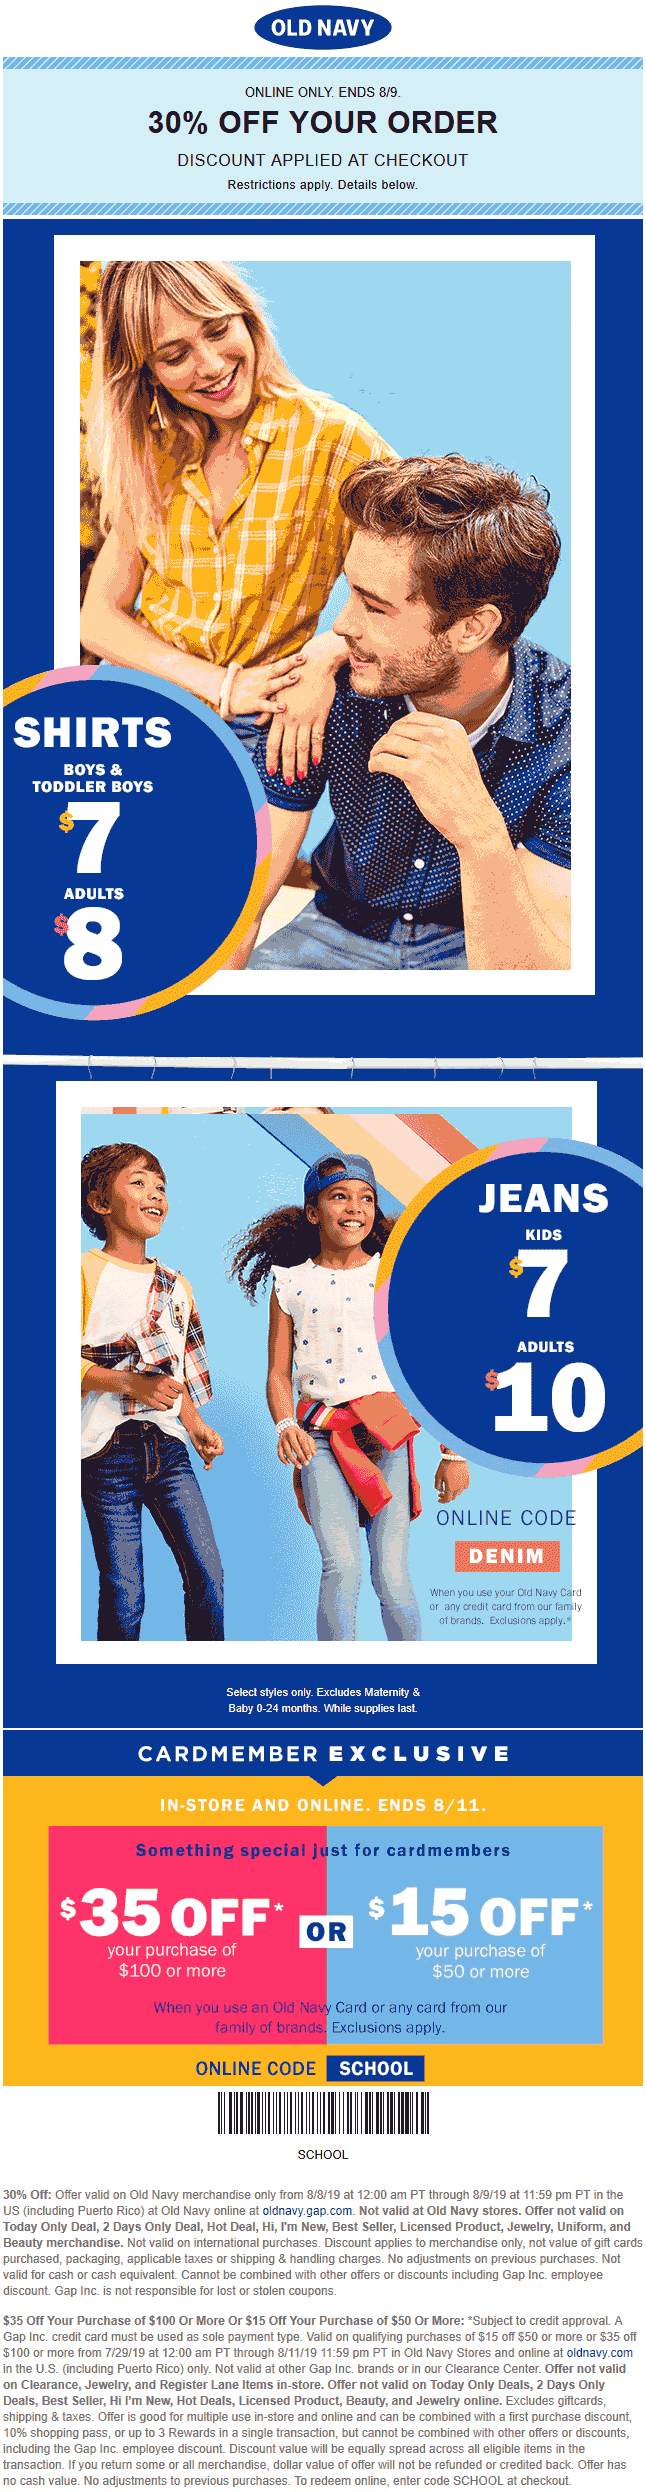 Old Navy coupons & promo code for [September 2020]